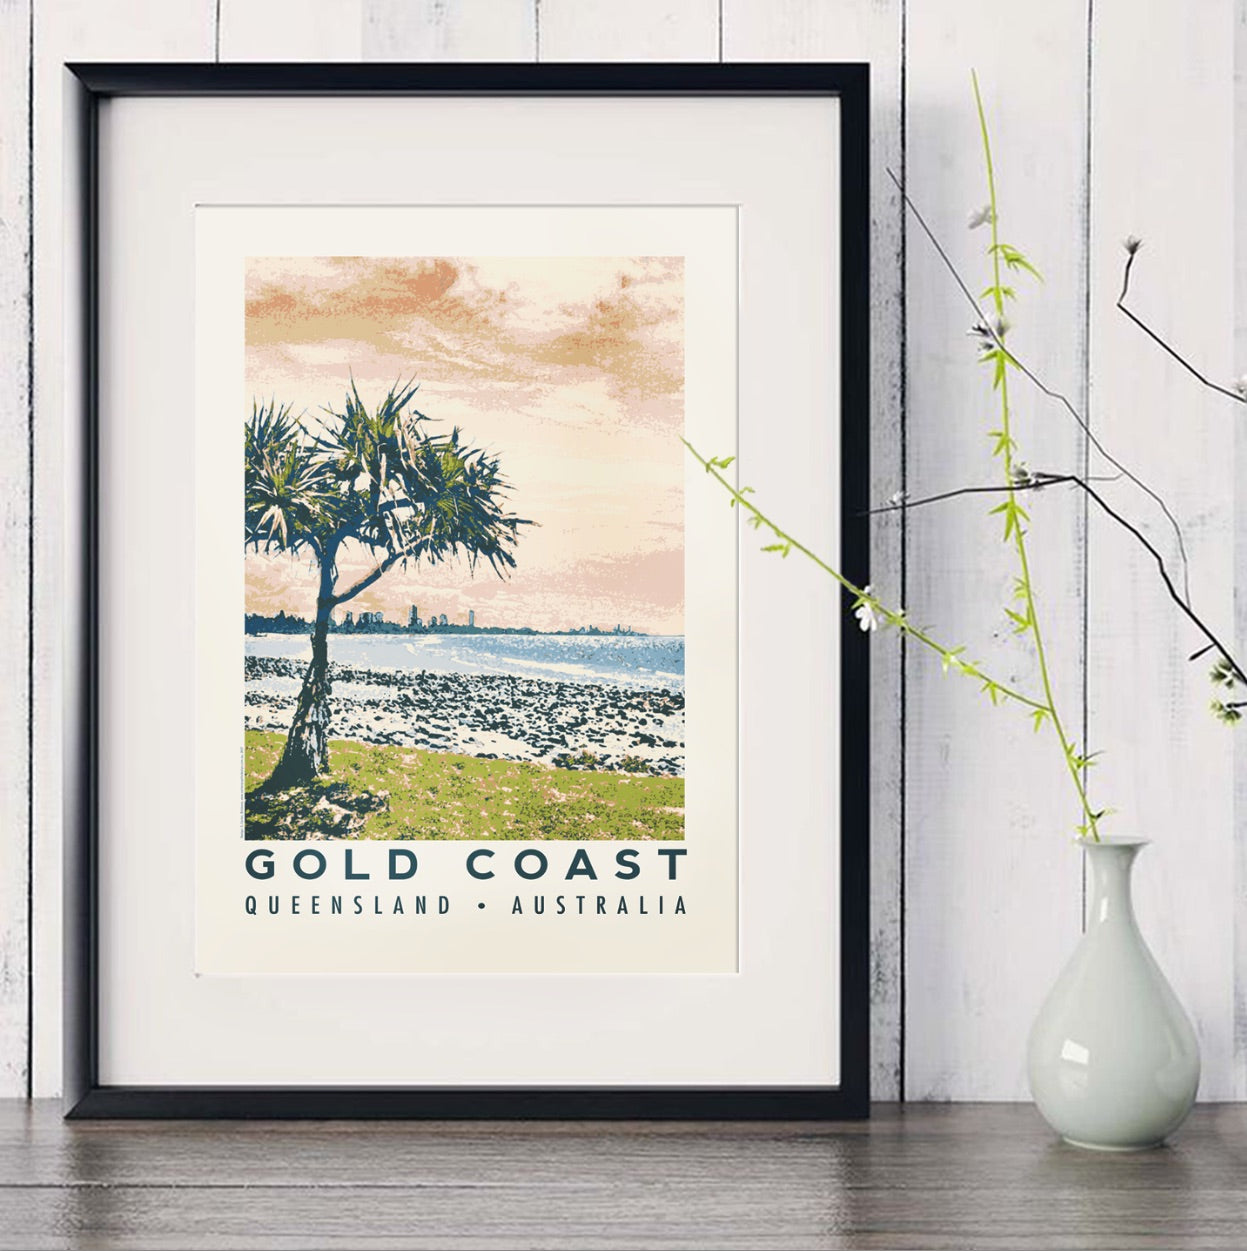 Queensland Gold Coast Poster 'Burleigh Heads' A4 in black frame with white vase